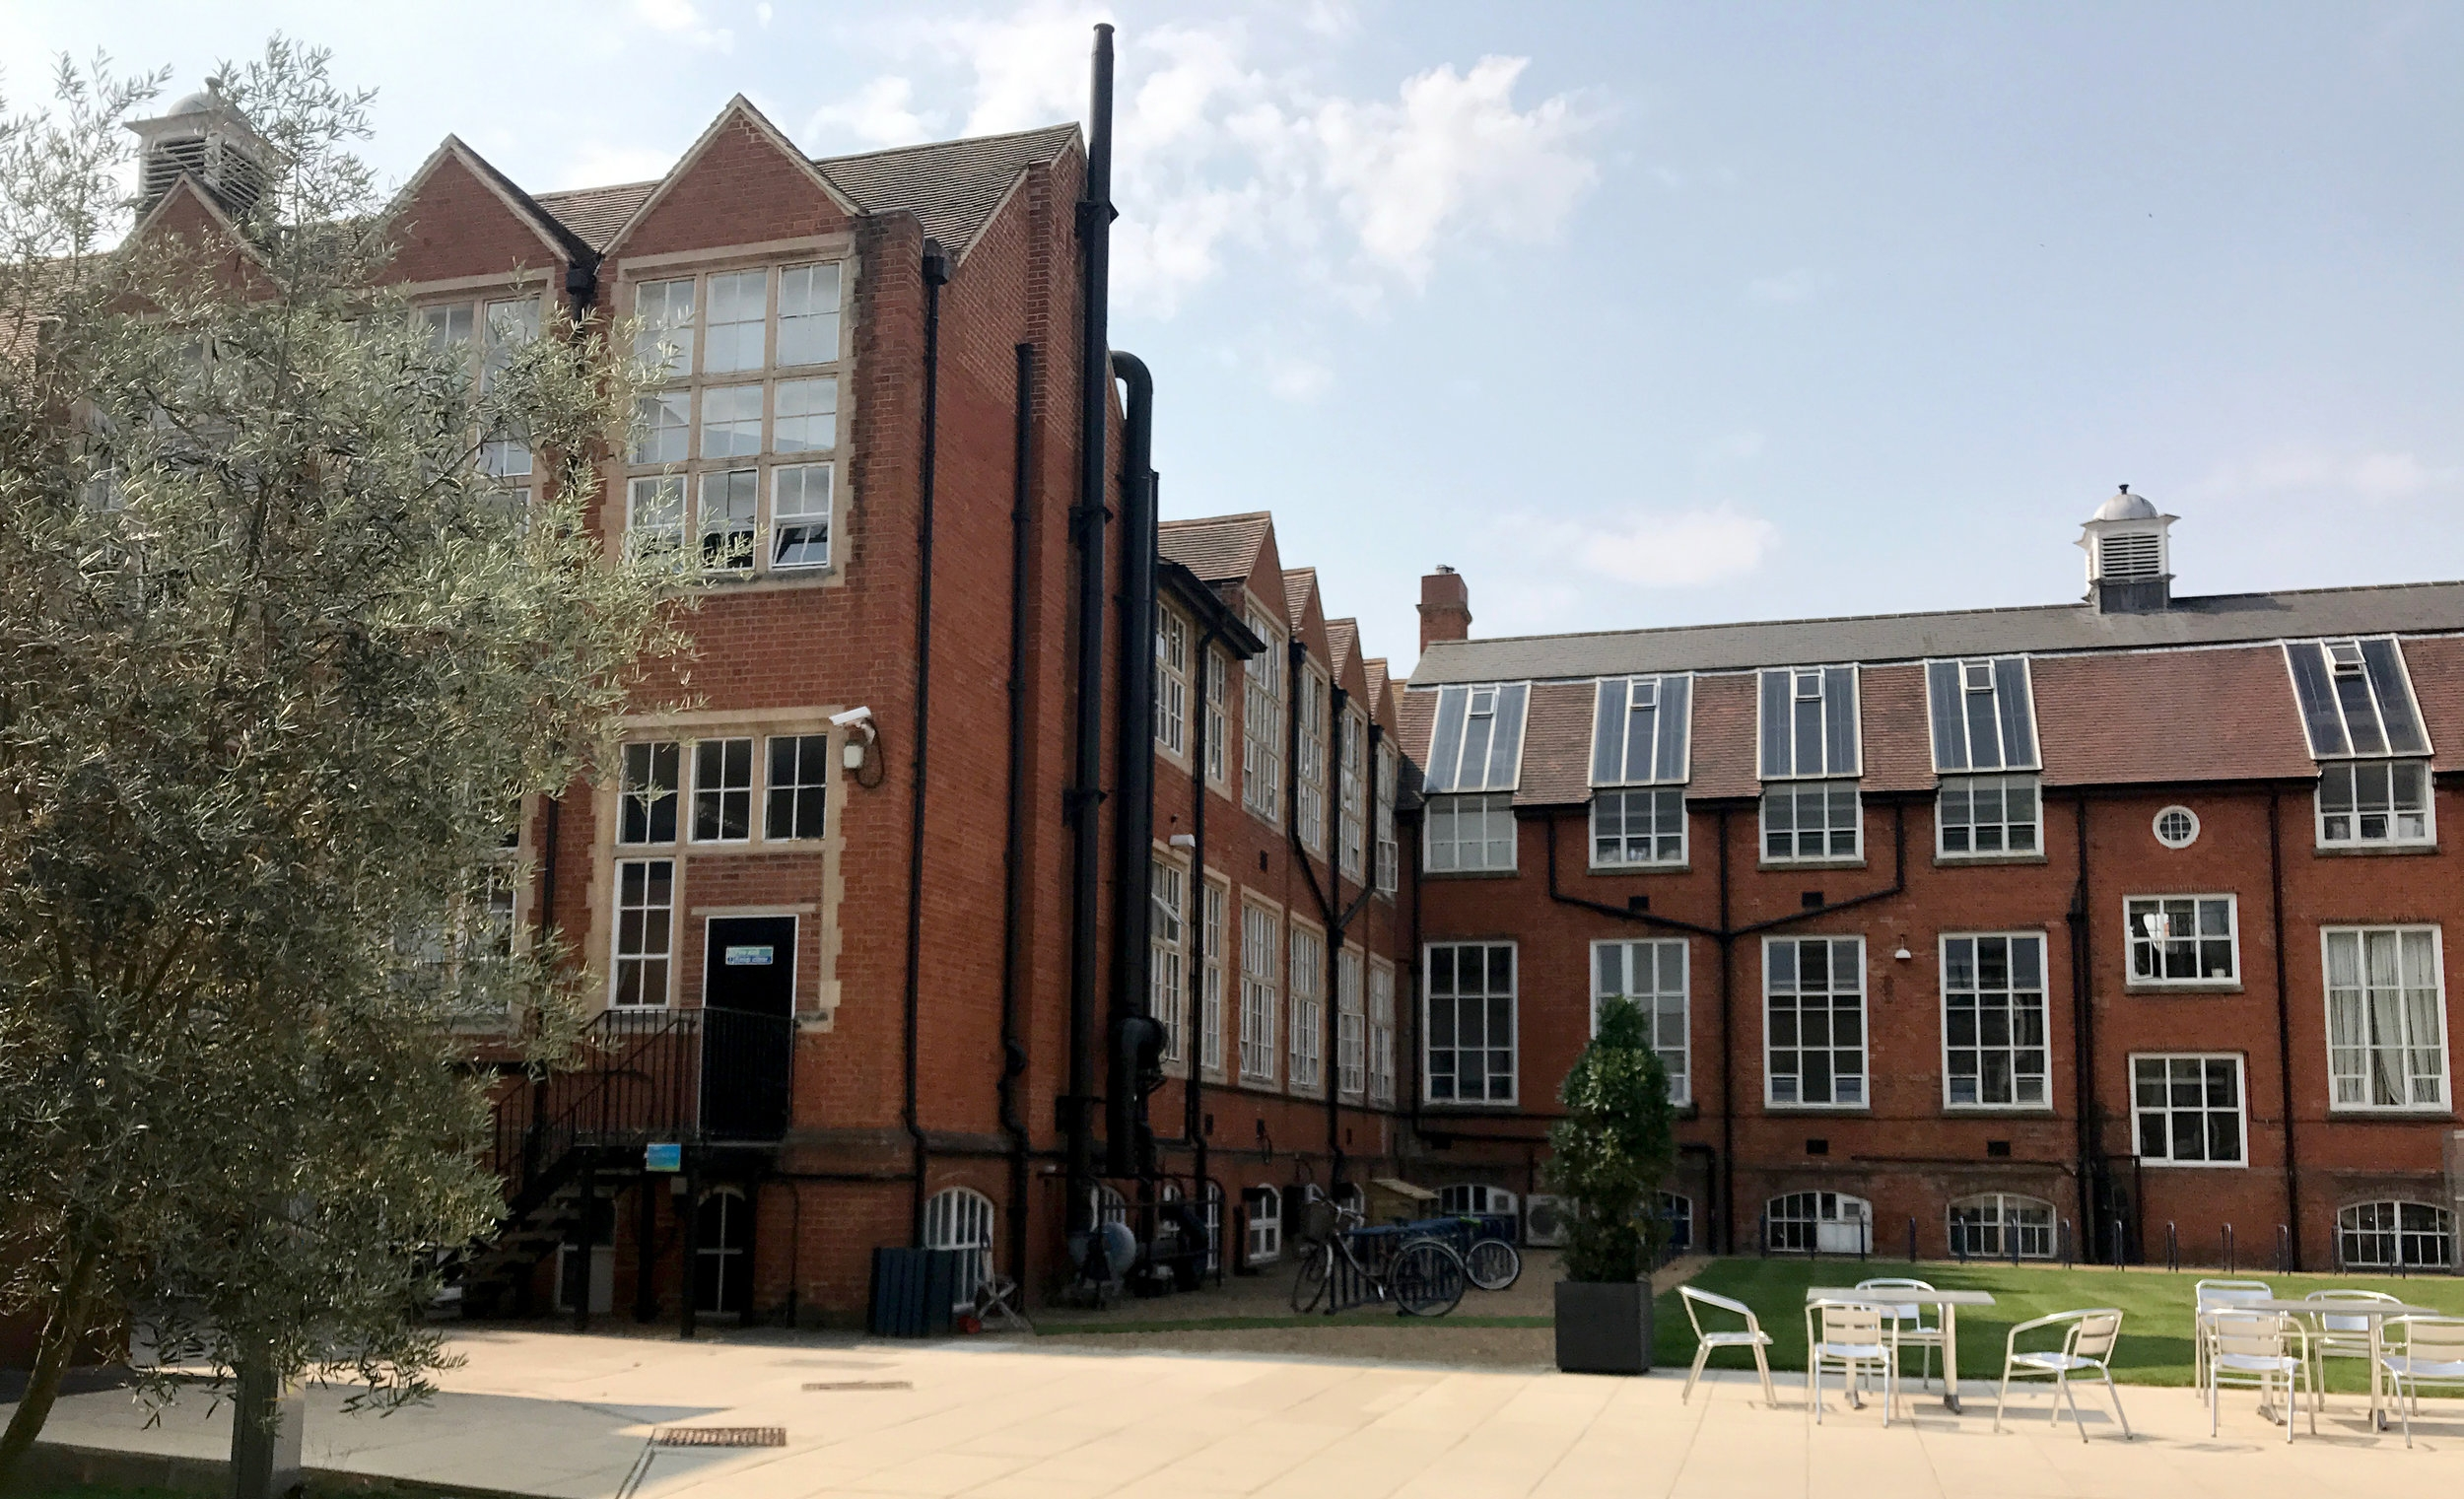 Anglia Ruskin University. Our studios were on the top floor with the big windows.